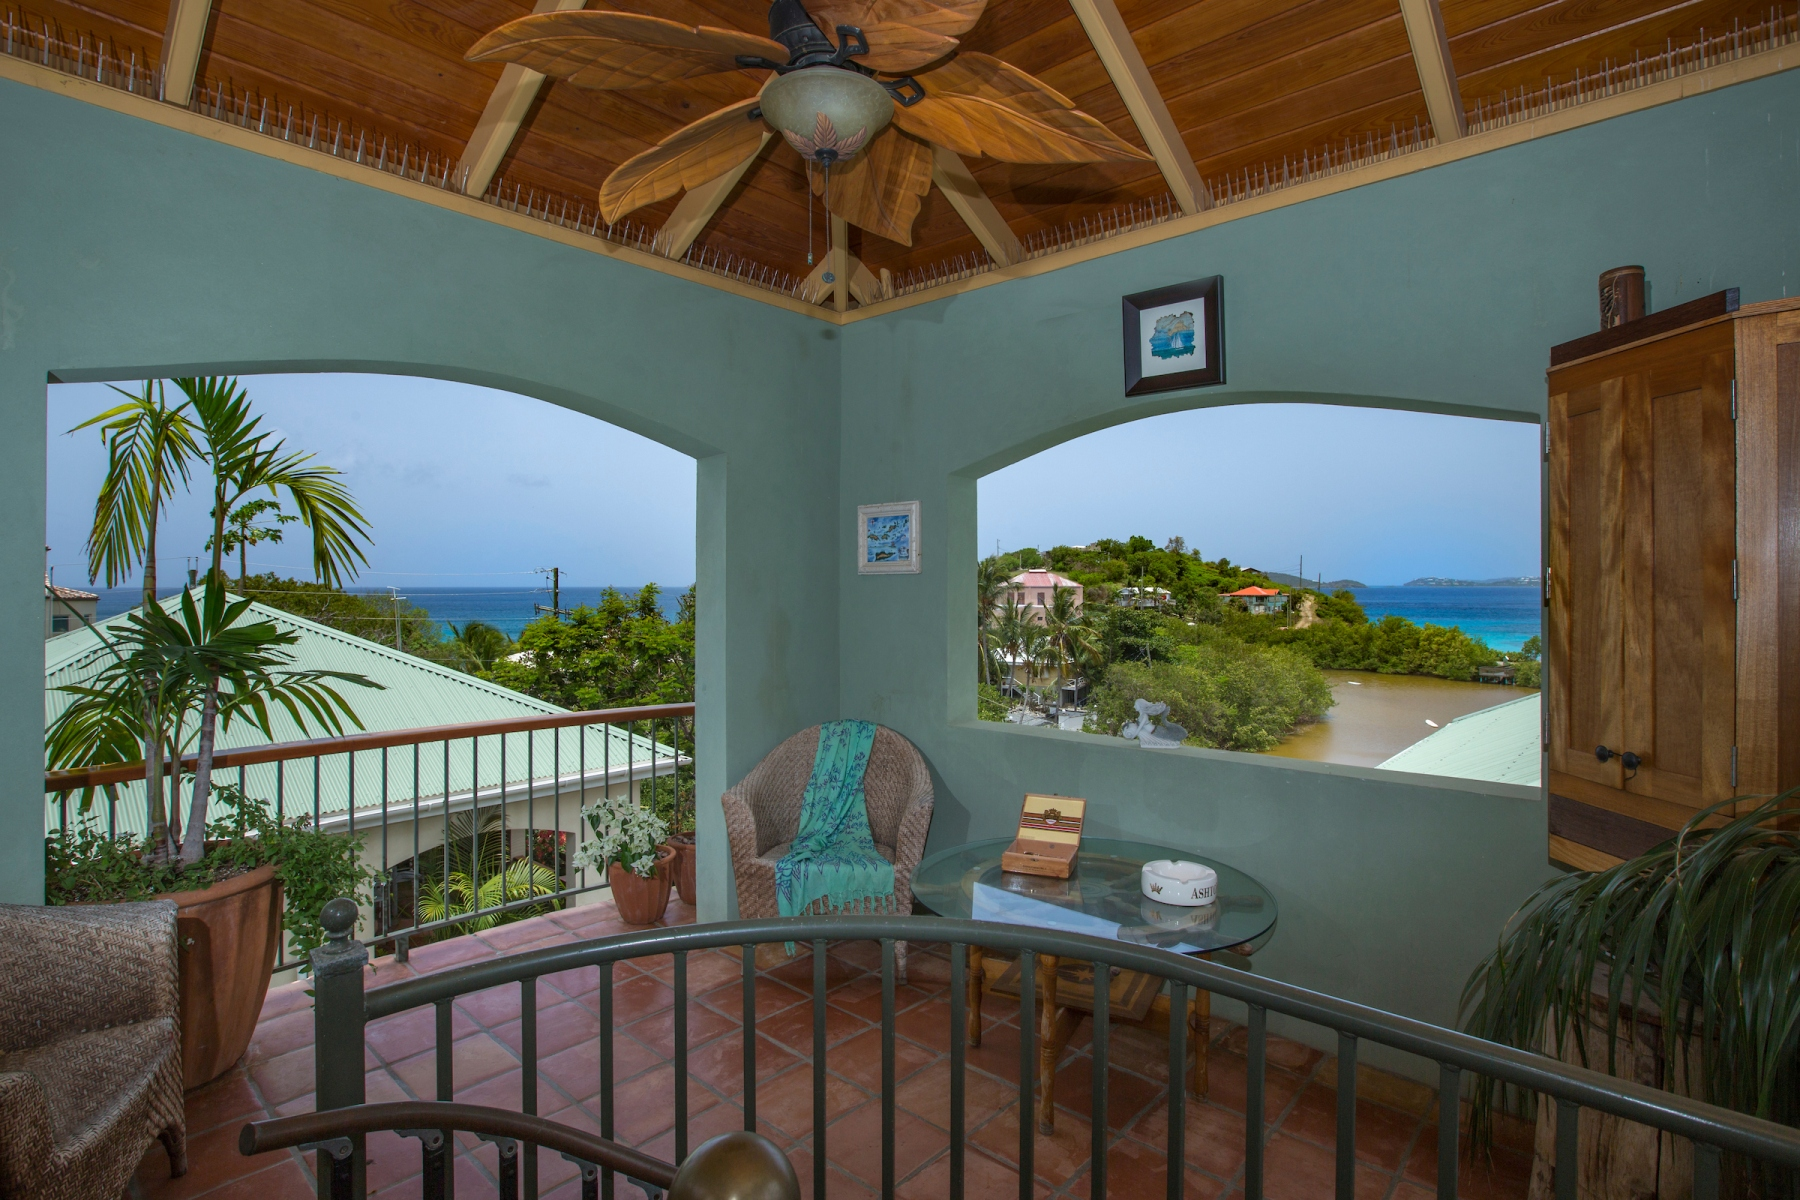 Single Family Home for Sale at El Capitan del Sol 201 Estate Contant & Enighed St John, Virgin Islands 00830 United States Virgin Islands